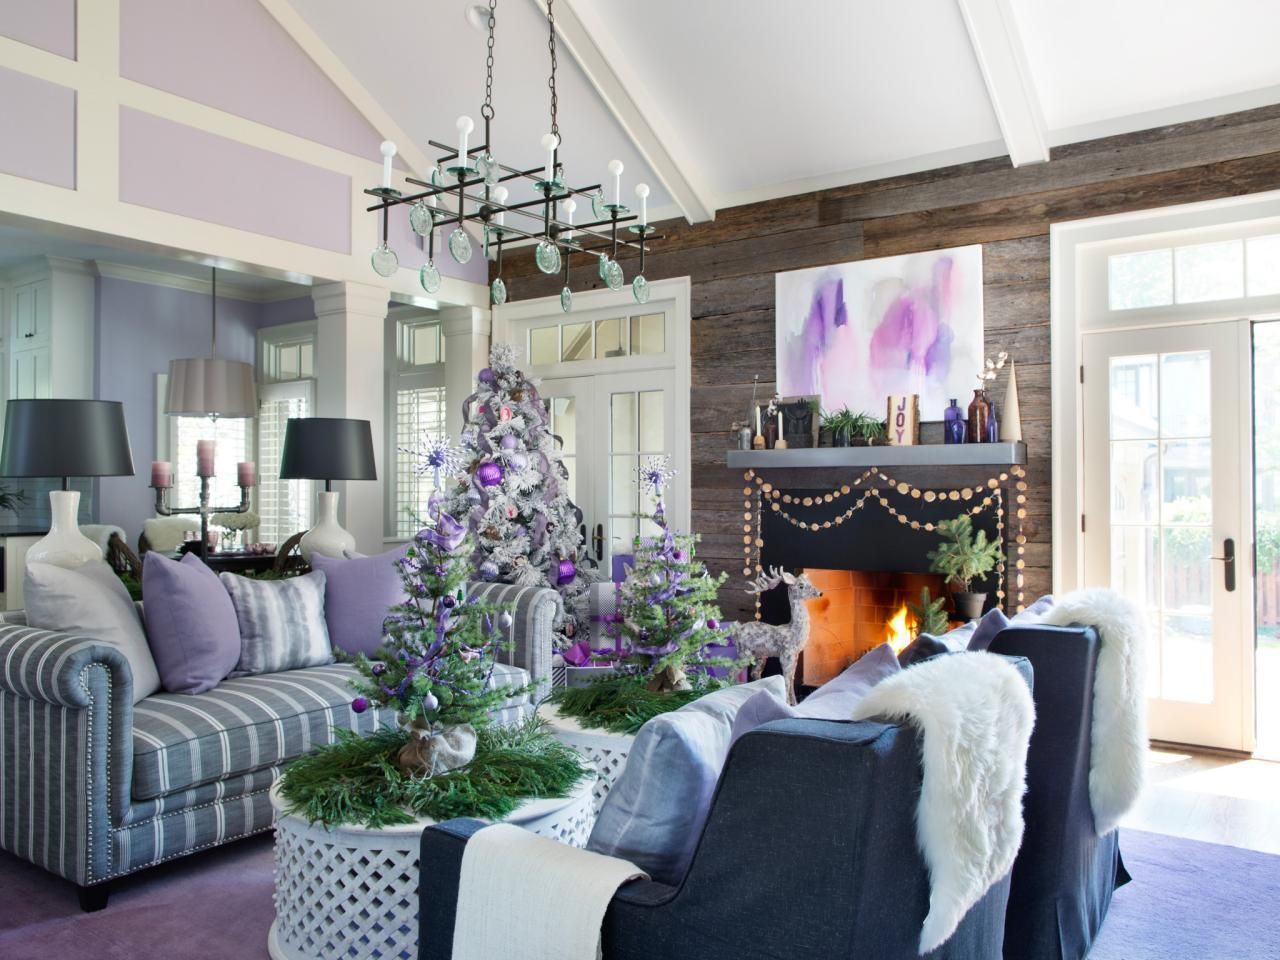 This winter add a touch of a modern romance in your holiday decor with modern festive palette of colors lavender gray and purple